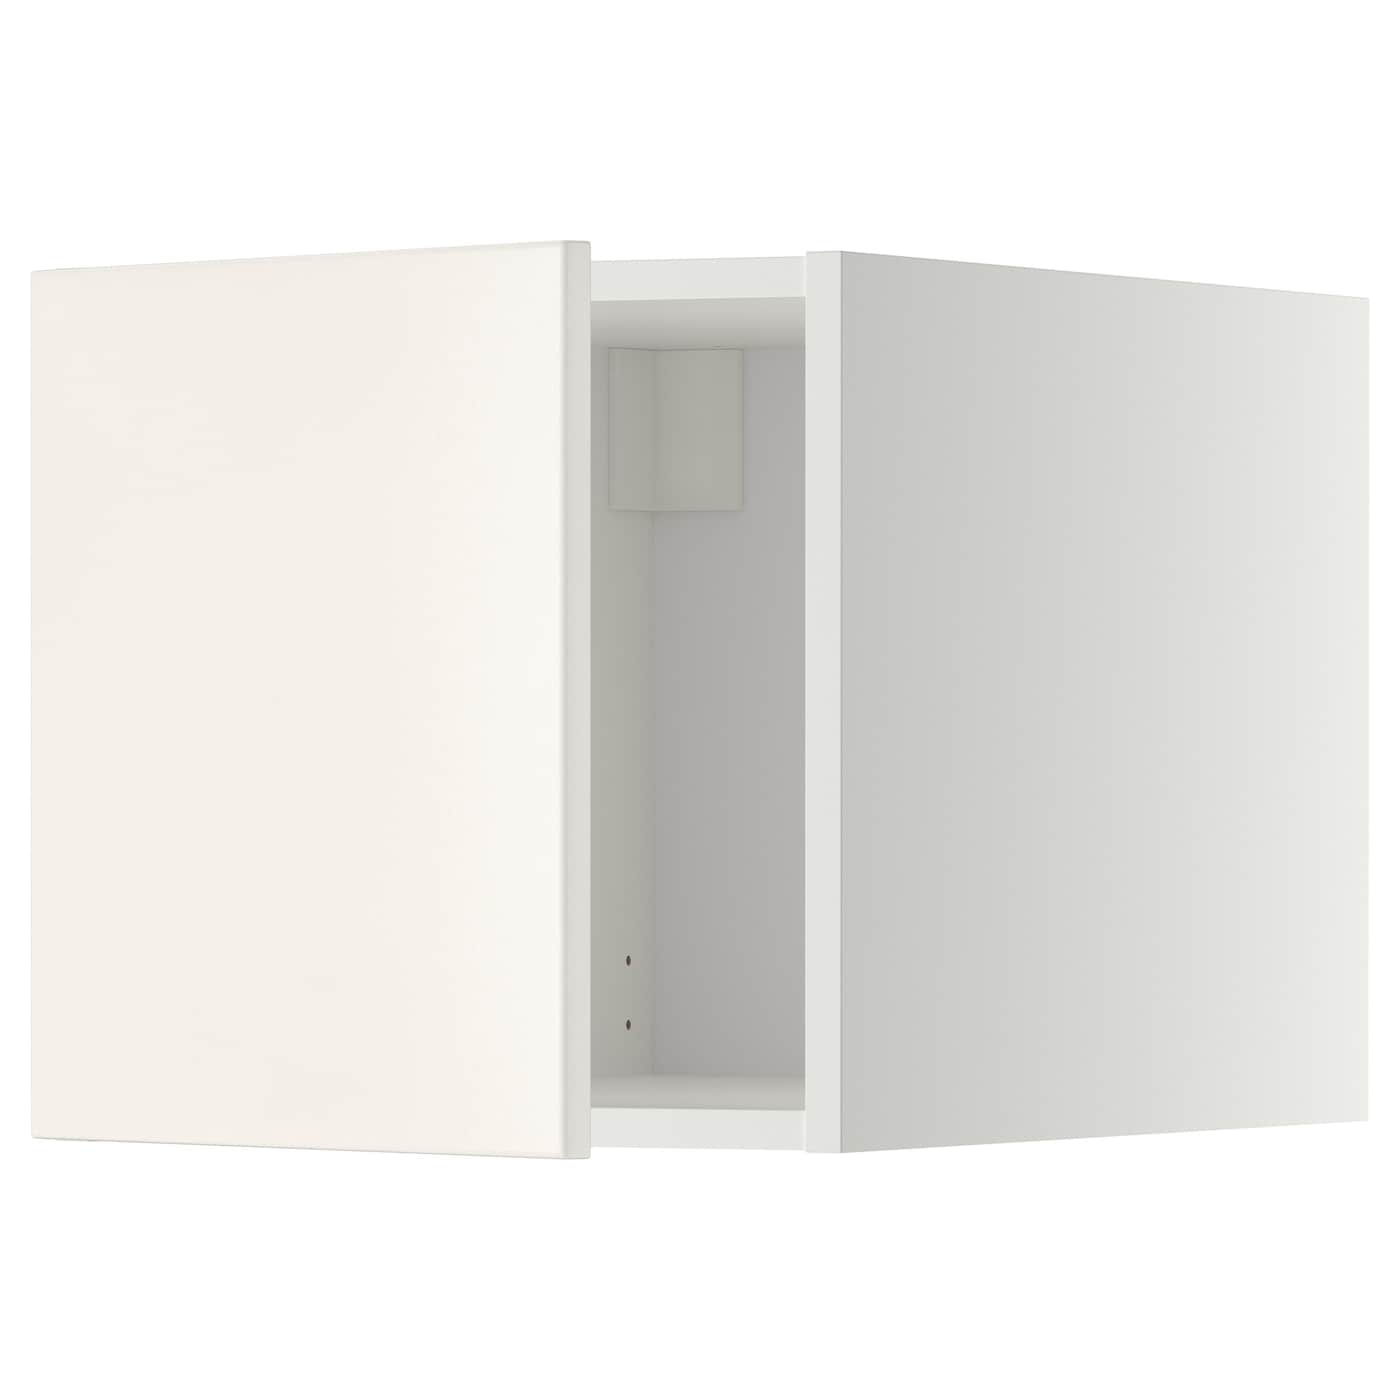 metod top cabinet white veddinge white 40x40 cm ikea. Black Bedroom Furniture Sets. Home Design Ideas